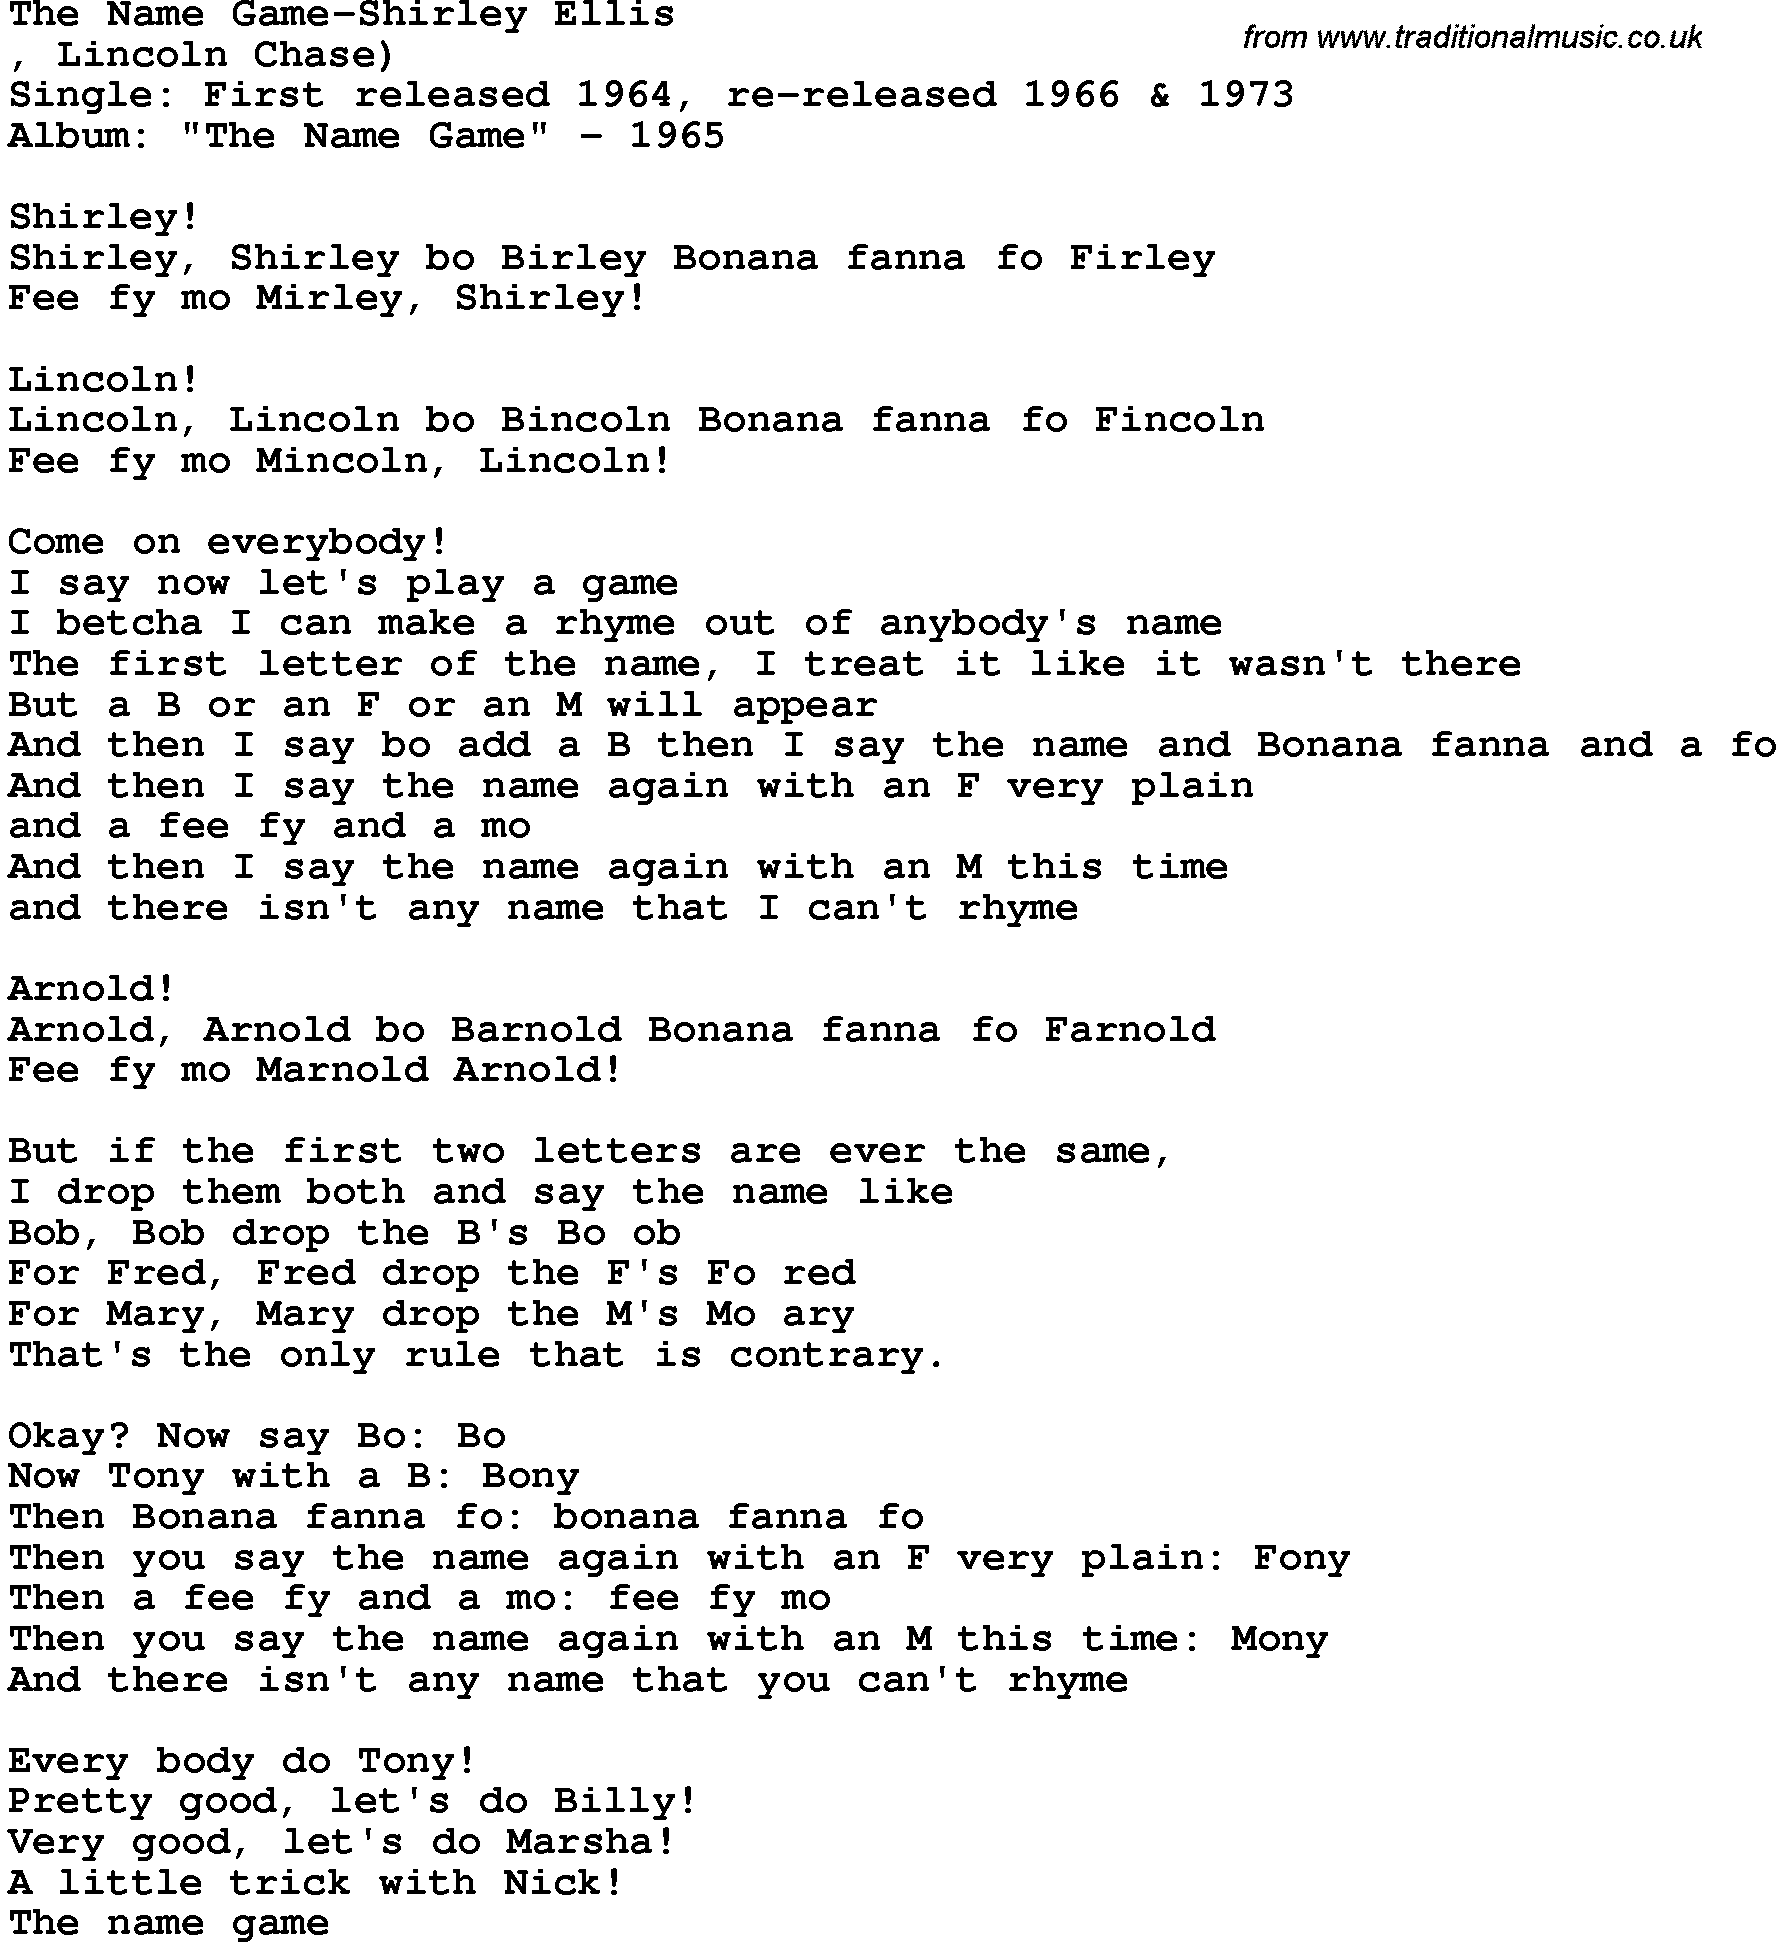 Novelty Song: The Name Game-Shirley Ellis lyrics